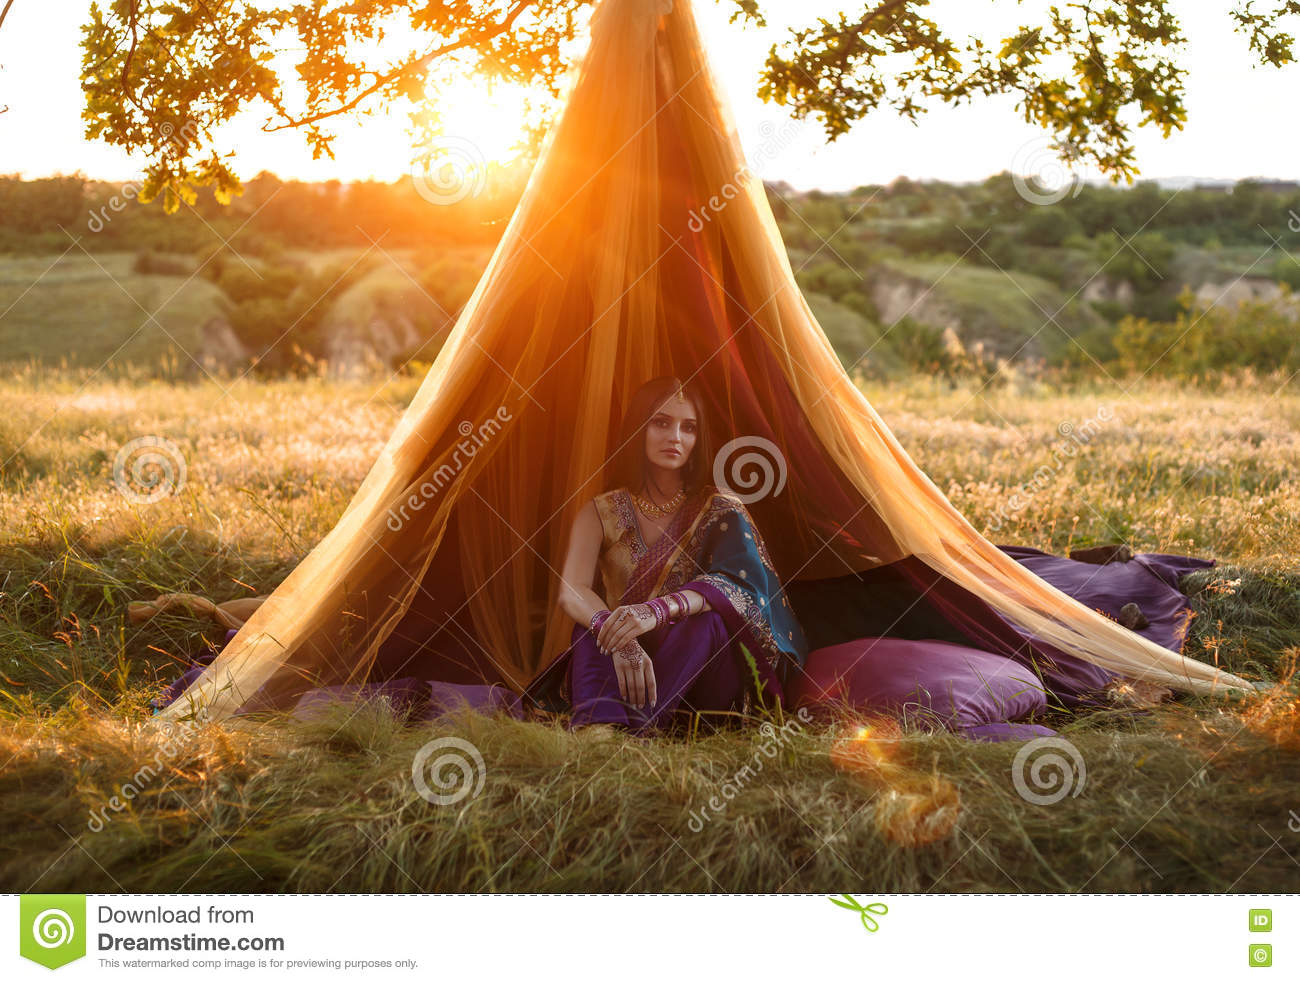 Luxurious Indian girl is sitting in a tent outdoors, at sunset.